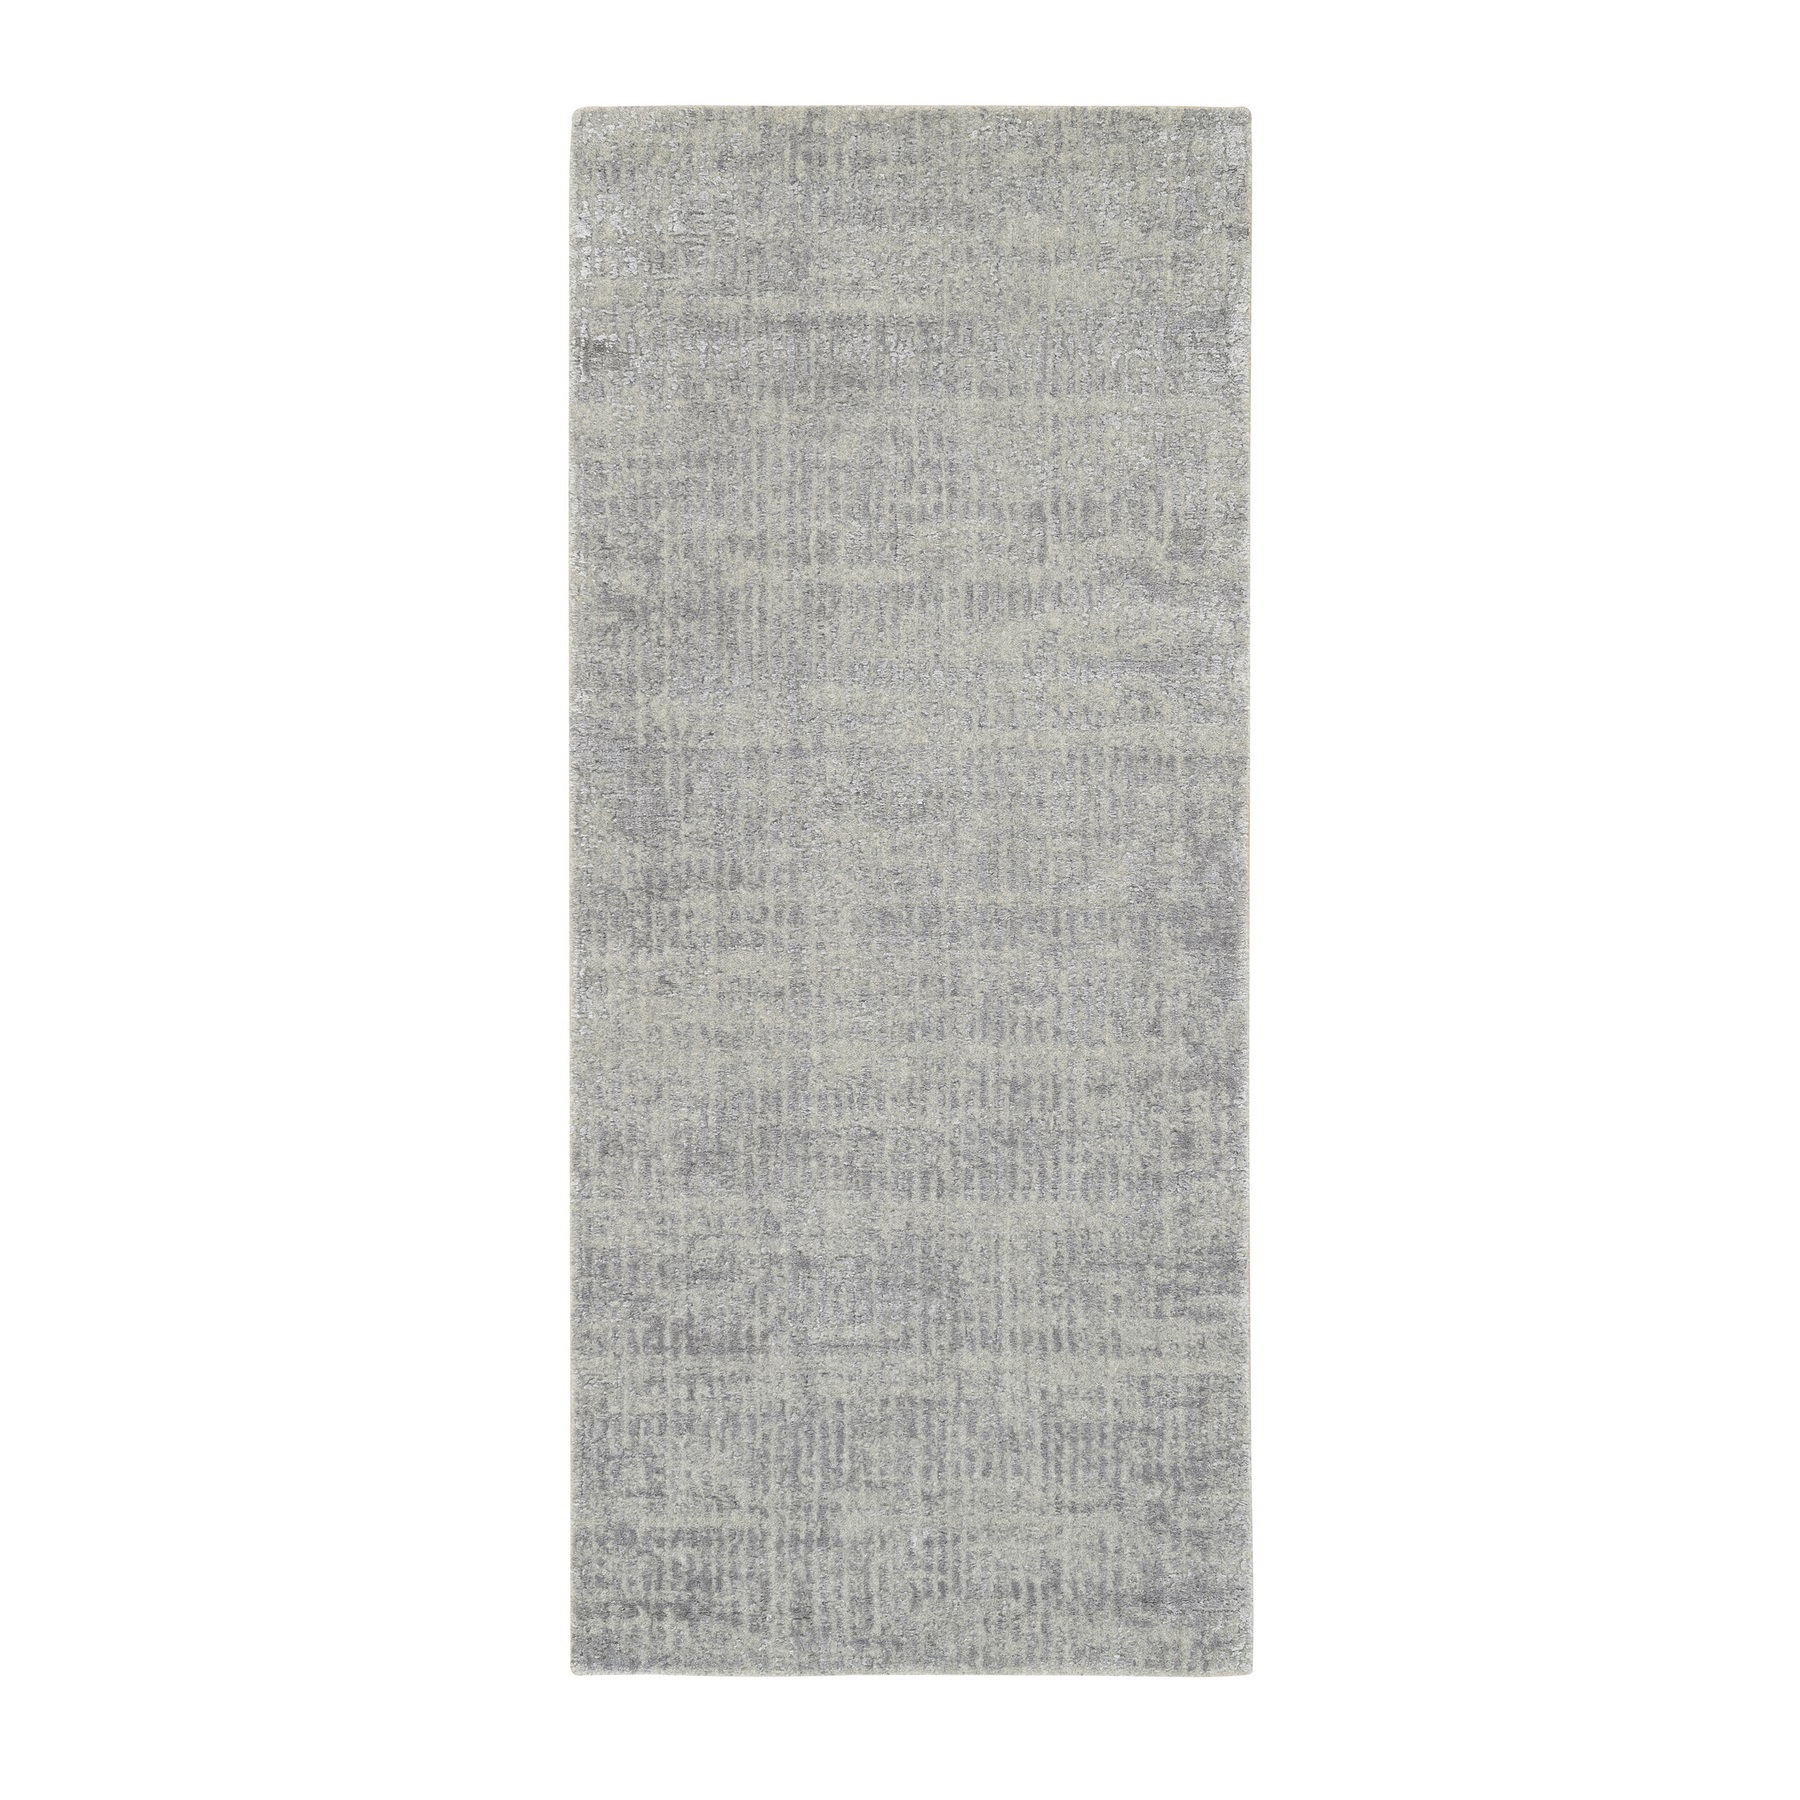 Mid Century Modern Collection Hand Loomed Grey Rug No: 1125702